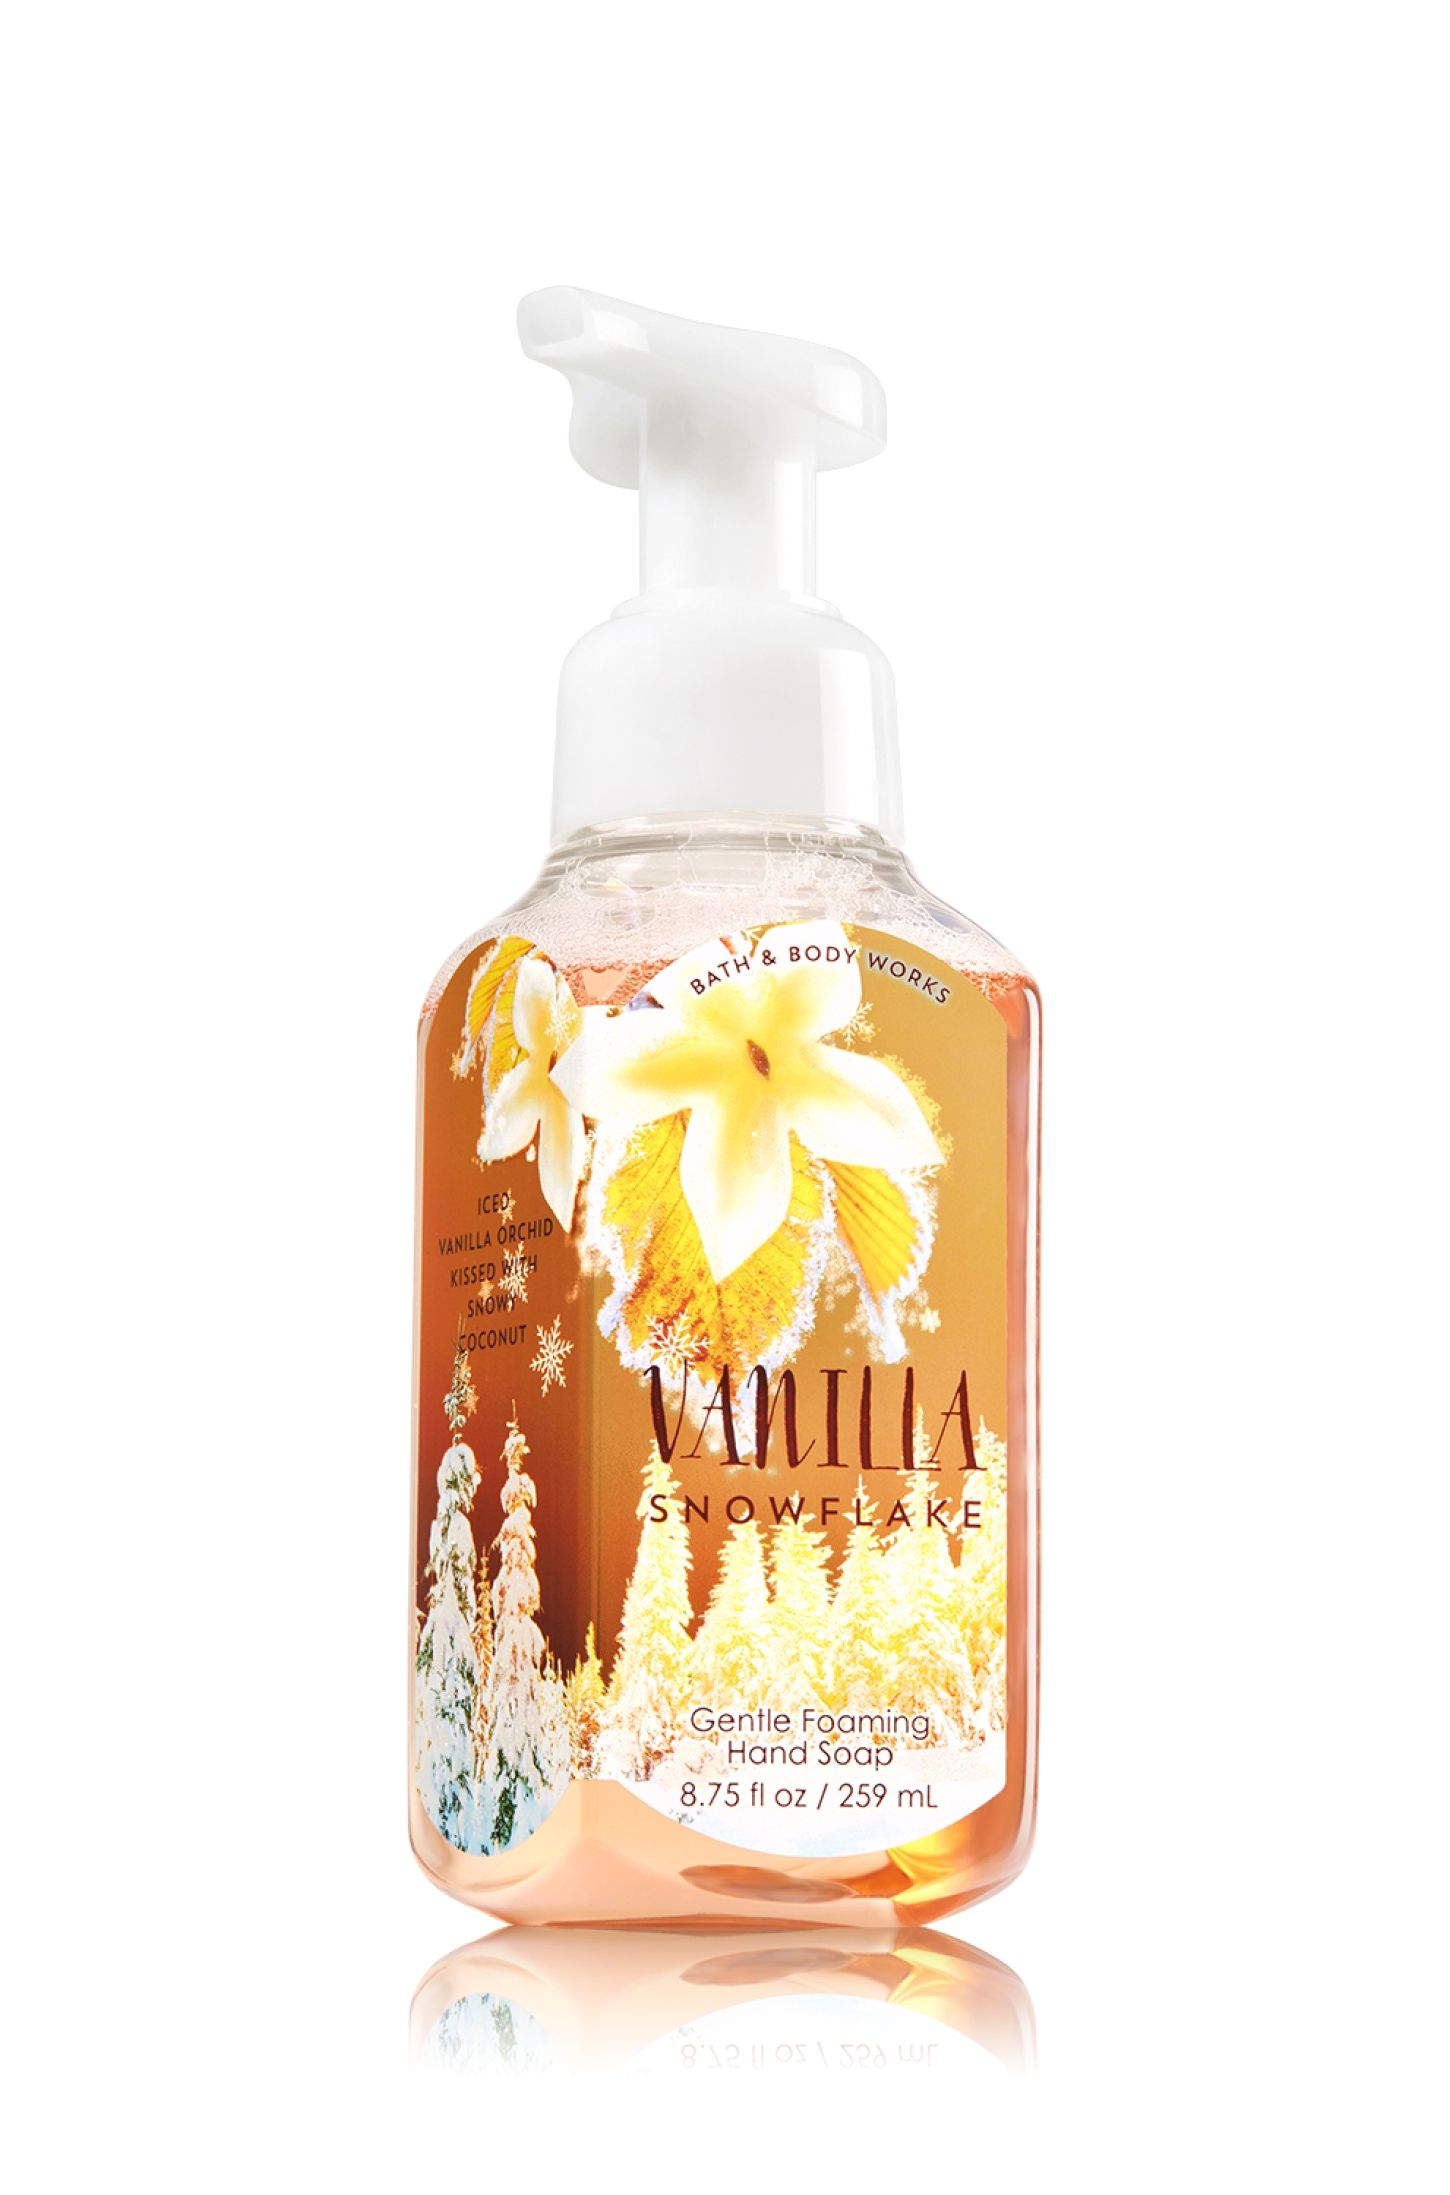 Vanilla Snowflake Gentle Foaming Hand Soap Soap Sanitizer Bath